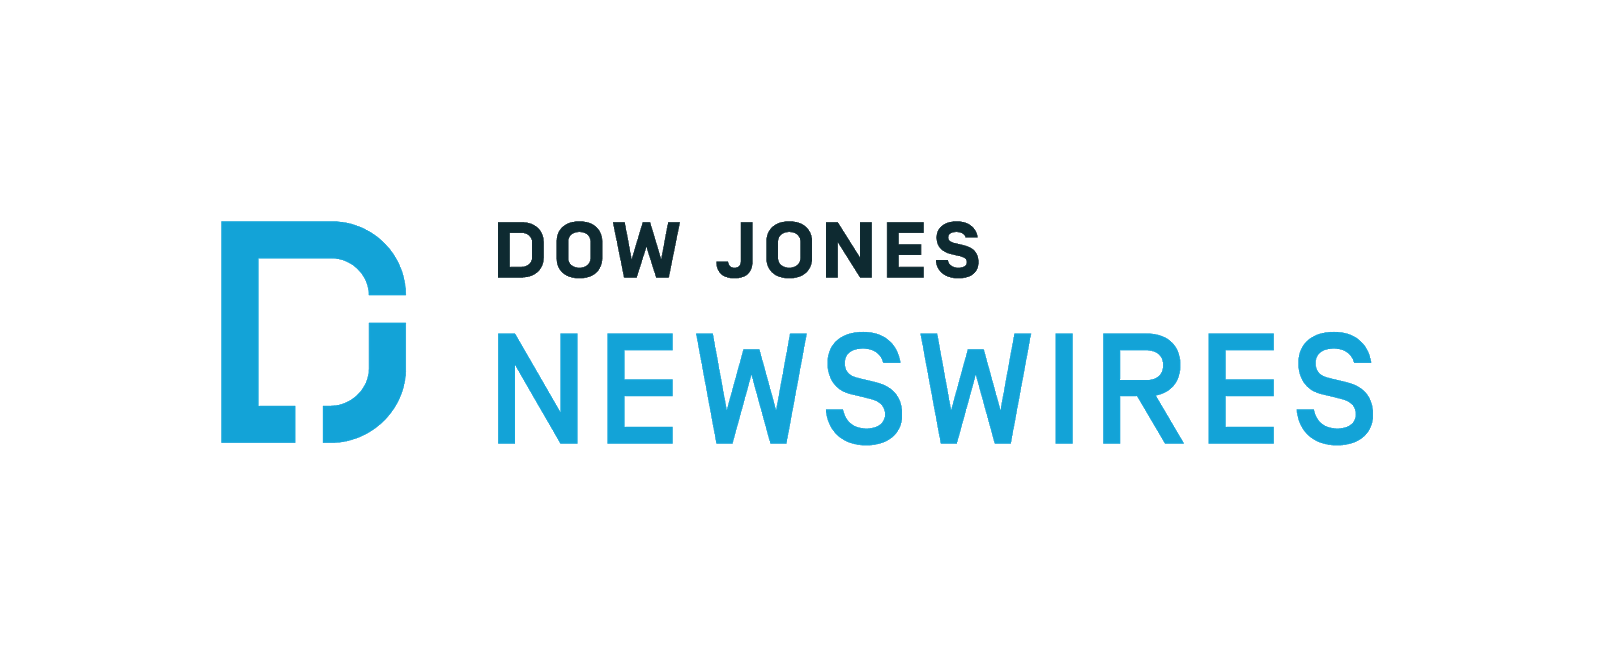 dow jones newsletter